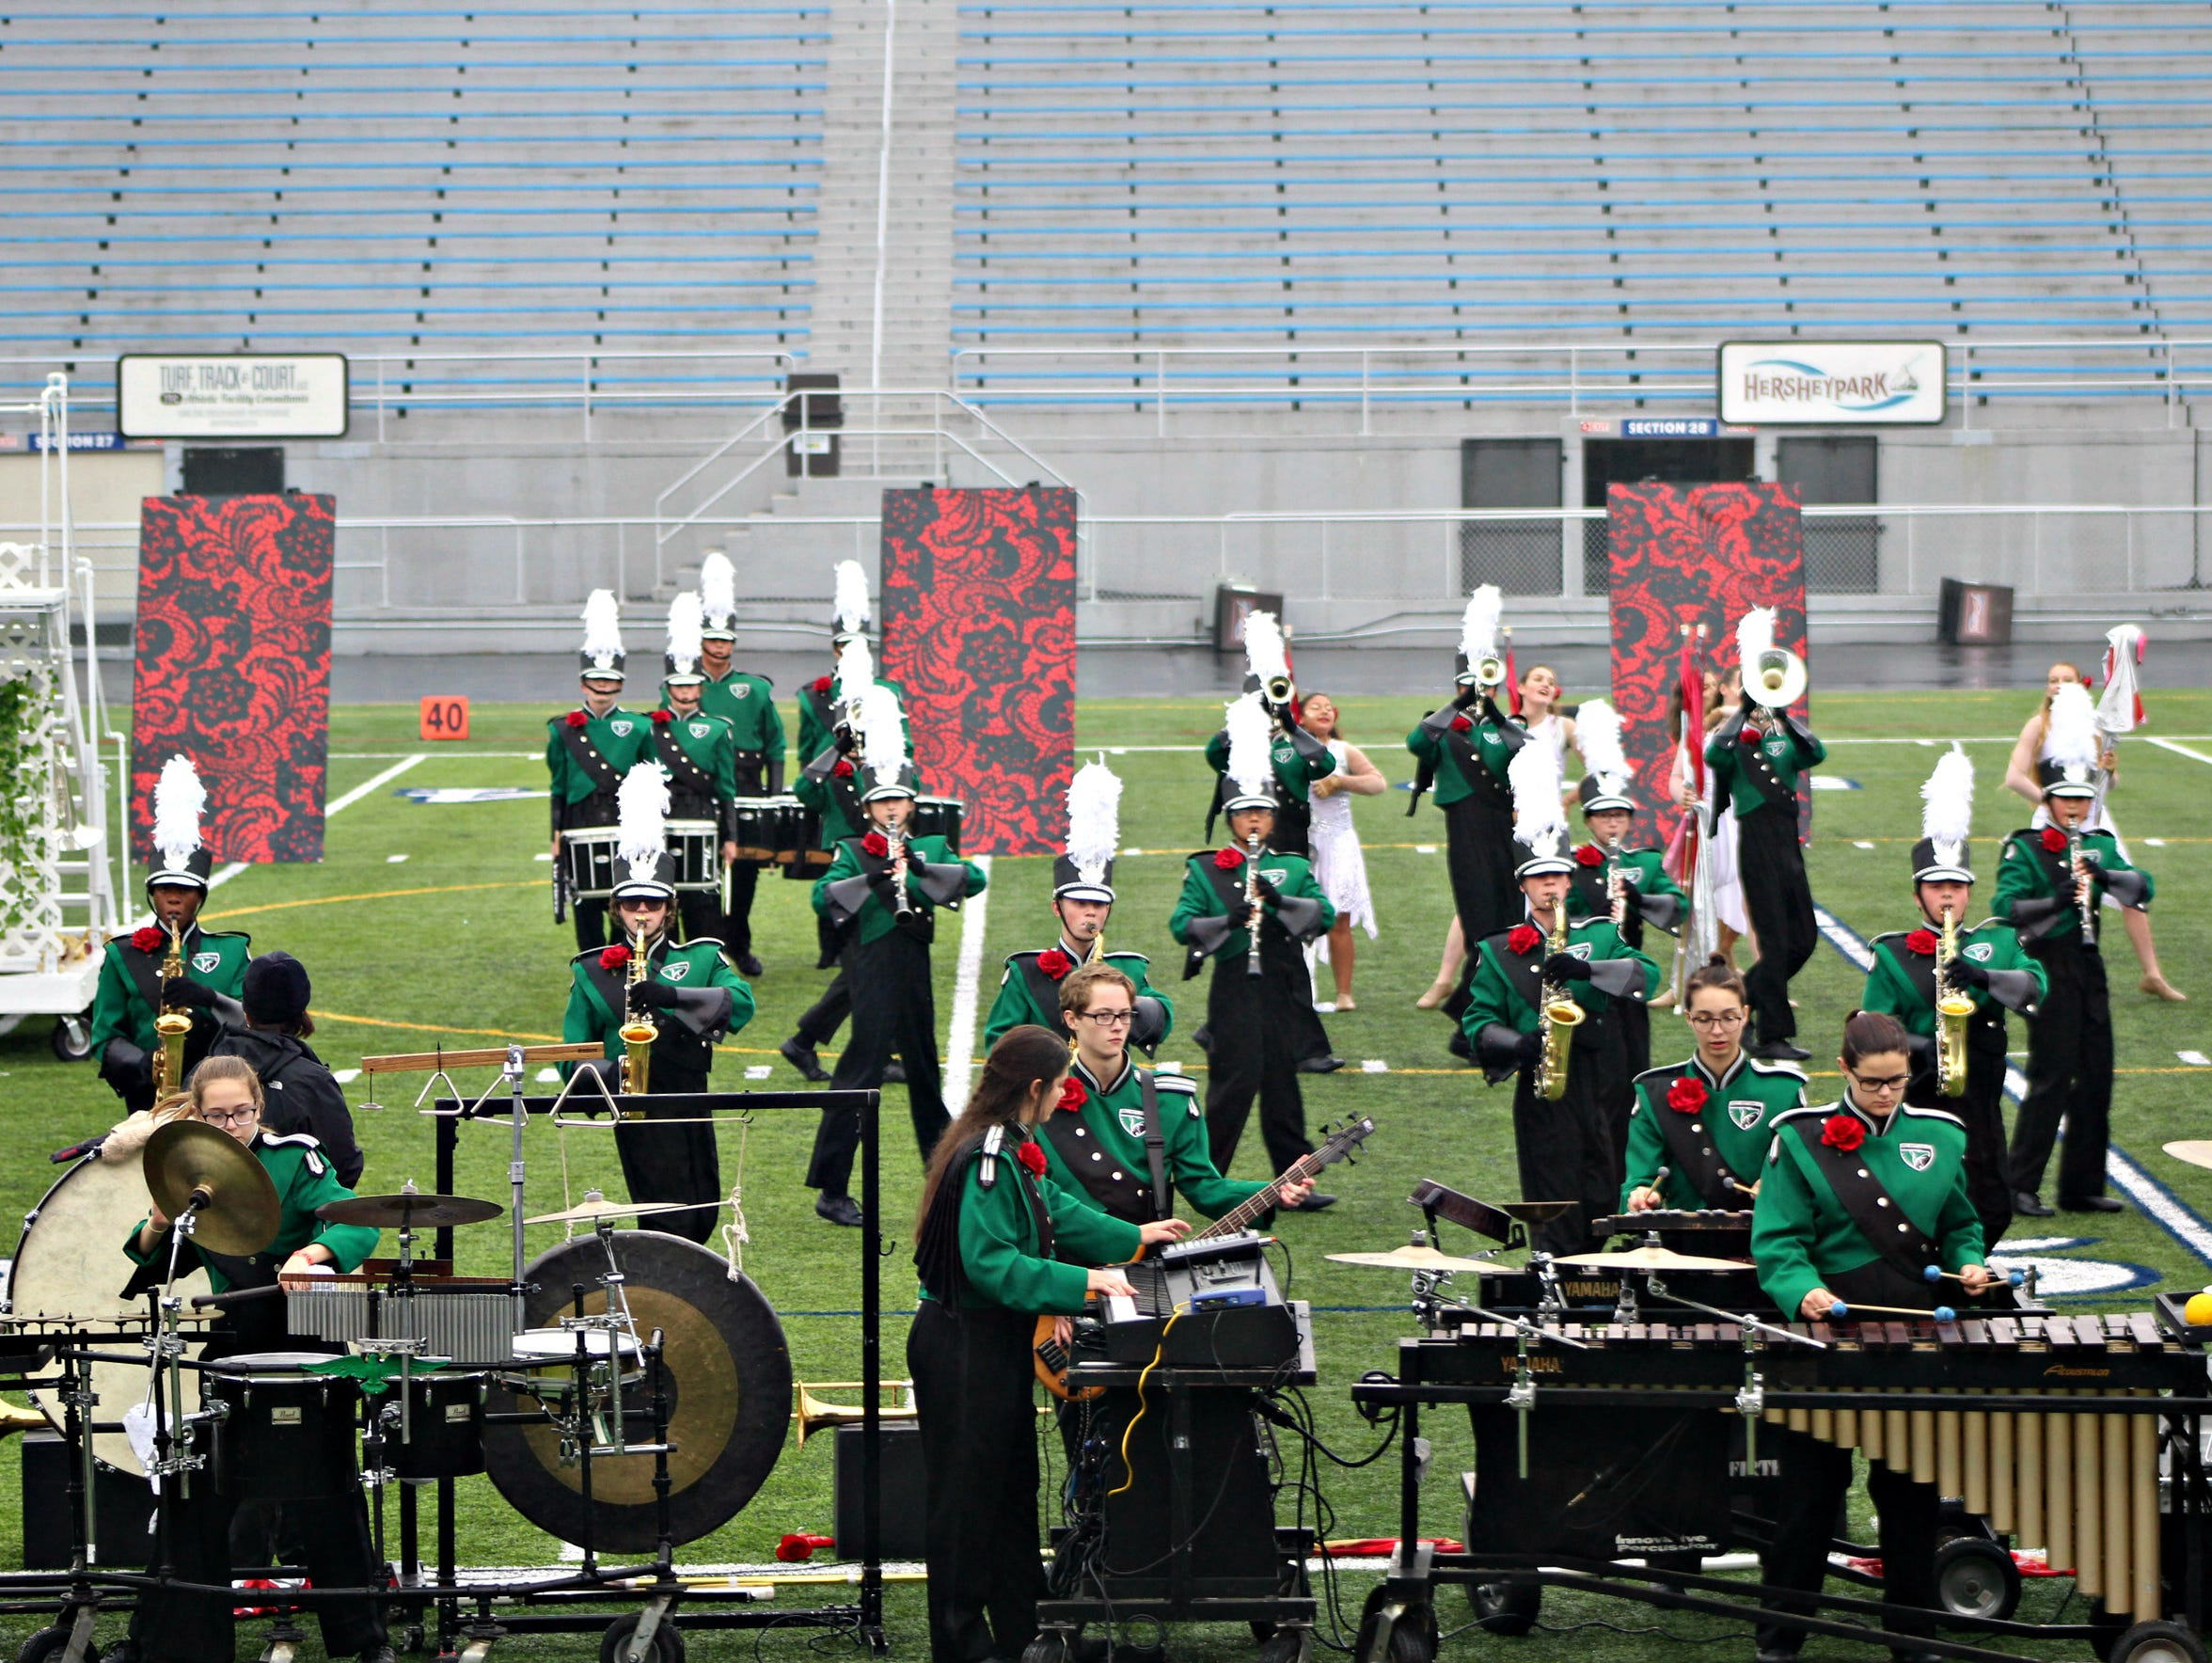 West Deptford High School Eagles Marching Band performs